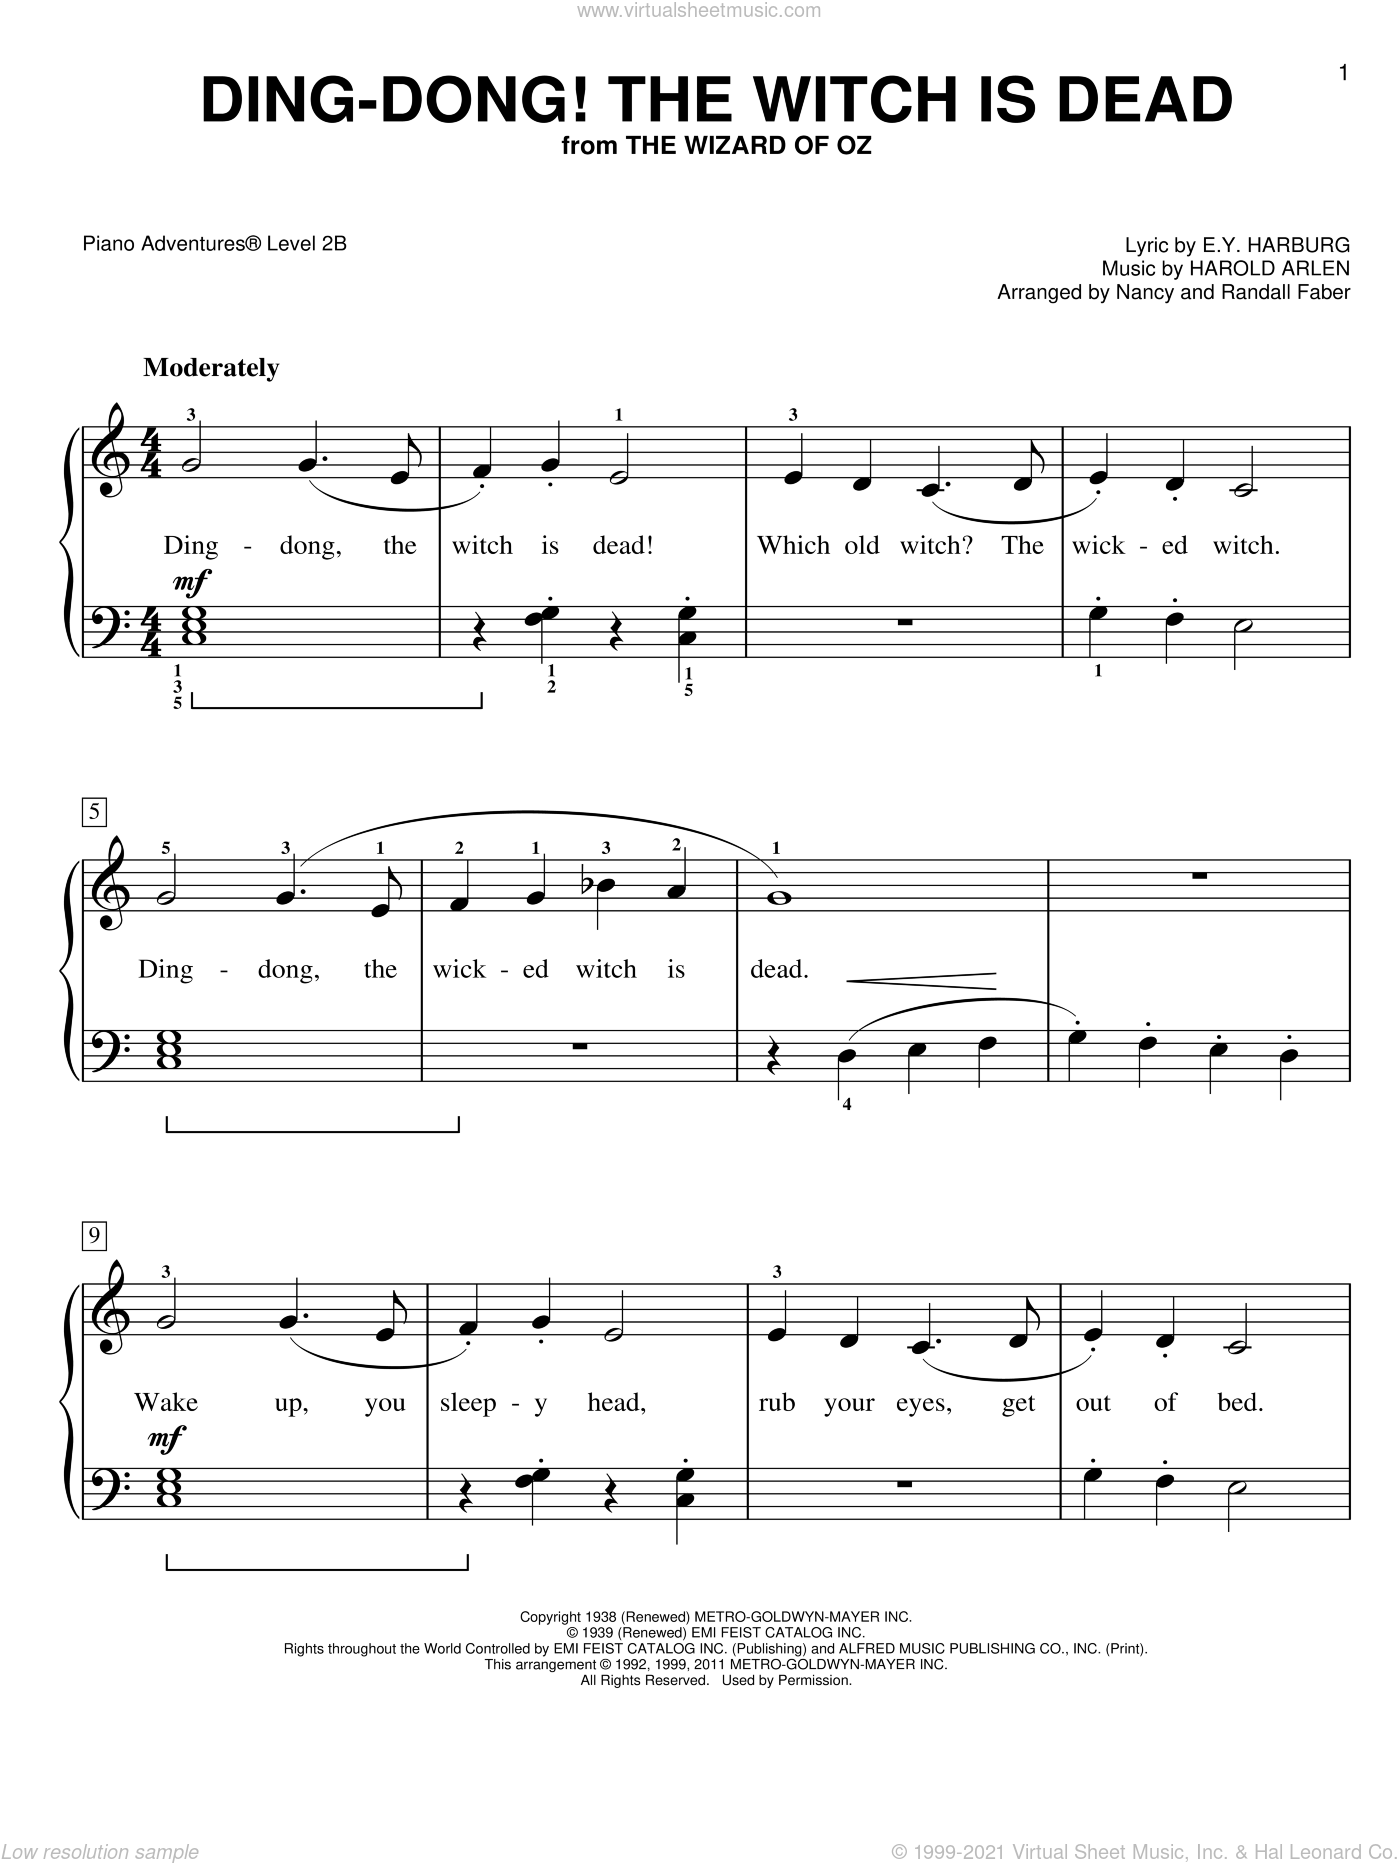 Ding-Dong! The Witch is Dead sheet music for piano solo by Nancy and Randall Faber